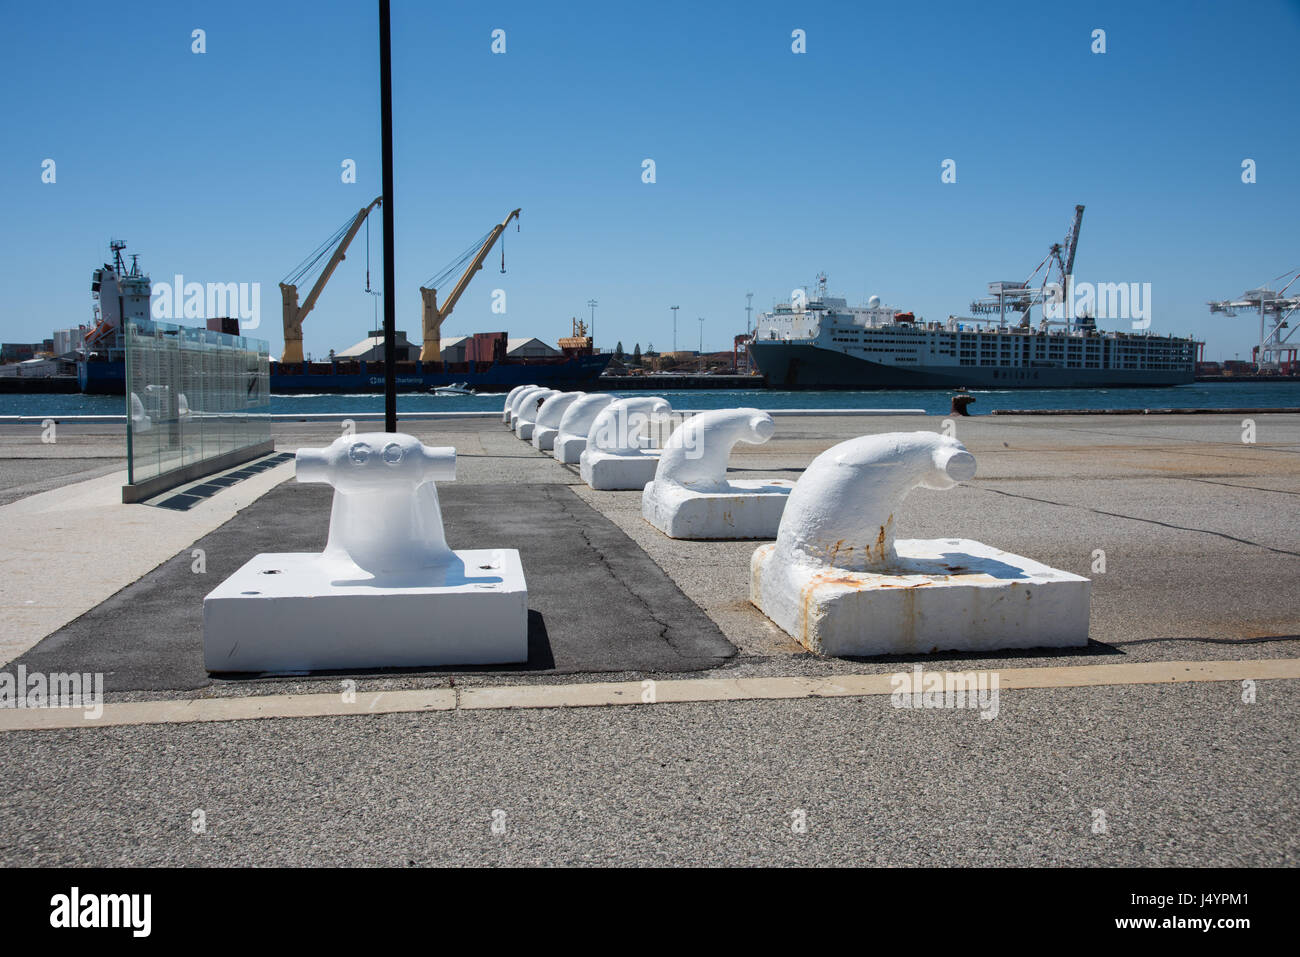 White moorings on the waterfront dock with commercial dock view, nautical vessels and large cranes on a clear day - Stock Image